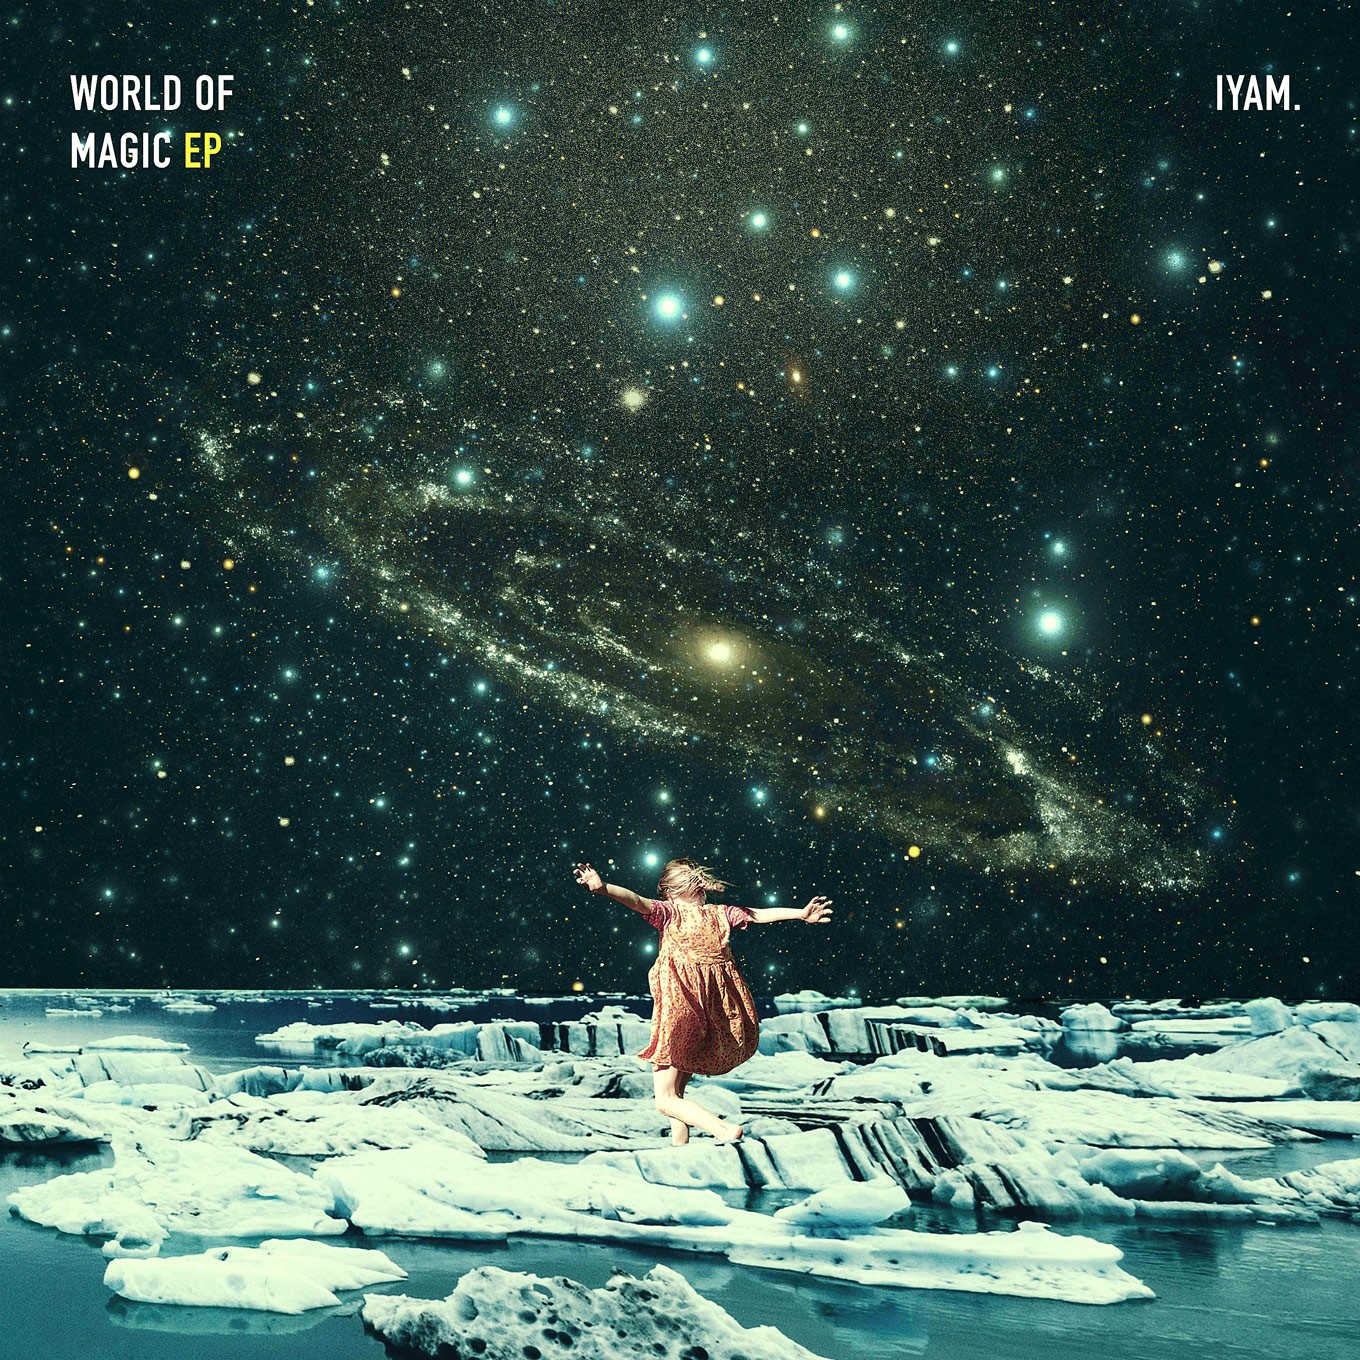 Album Review: 'World of Magic' by Iyam